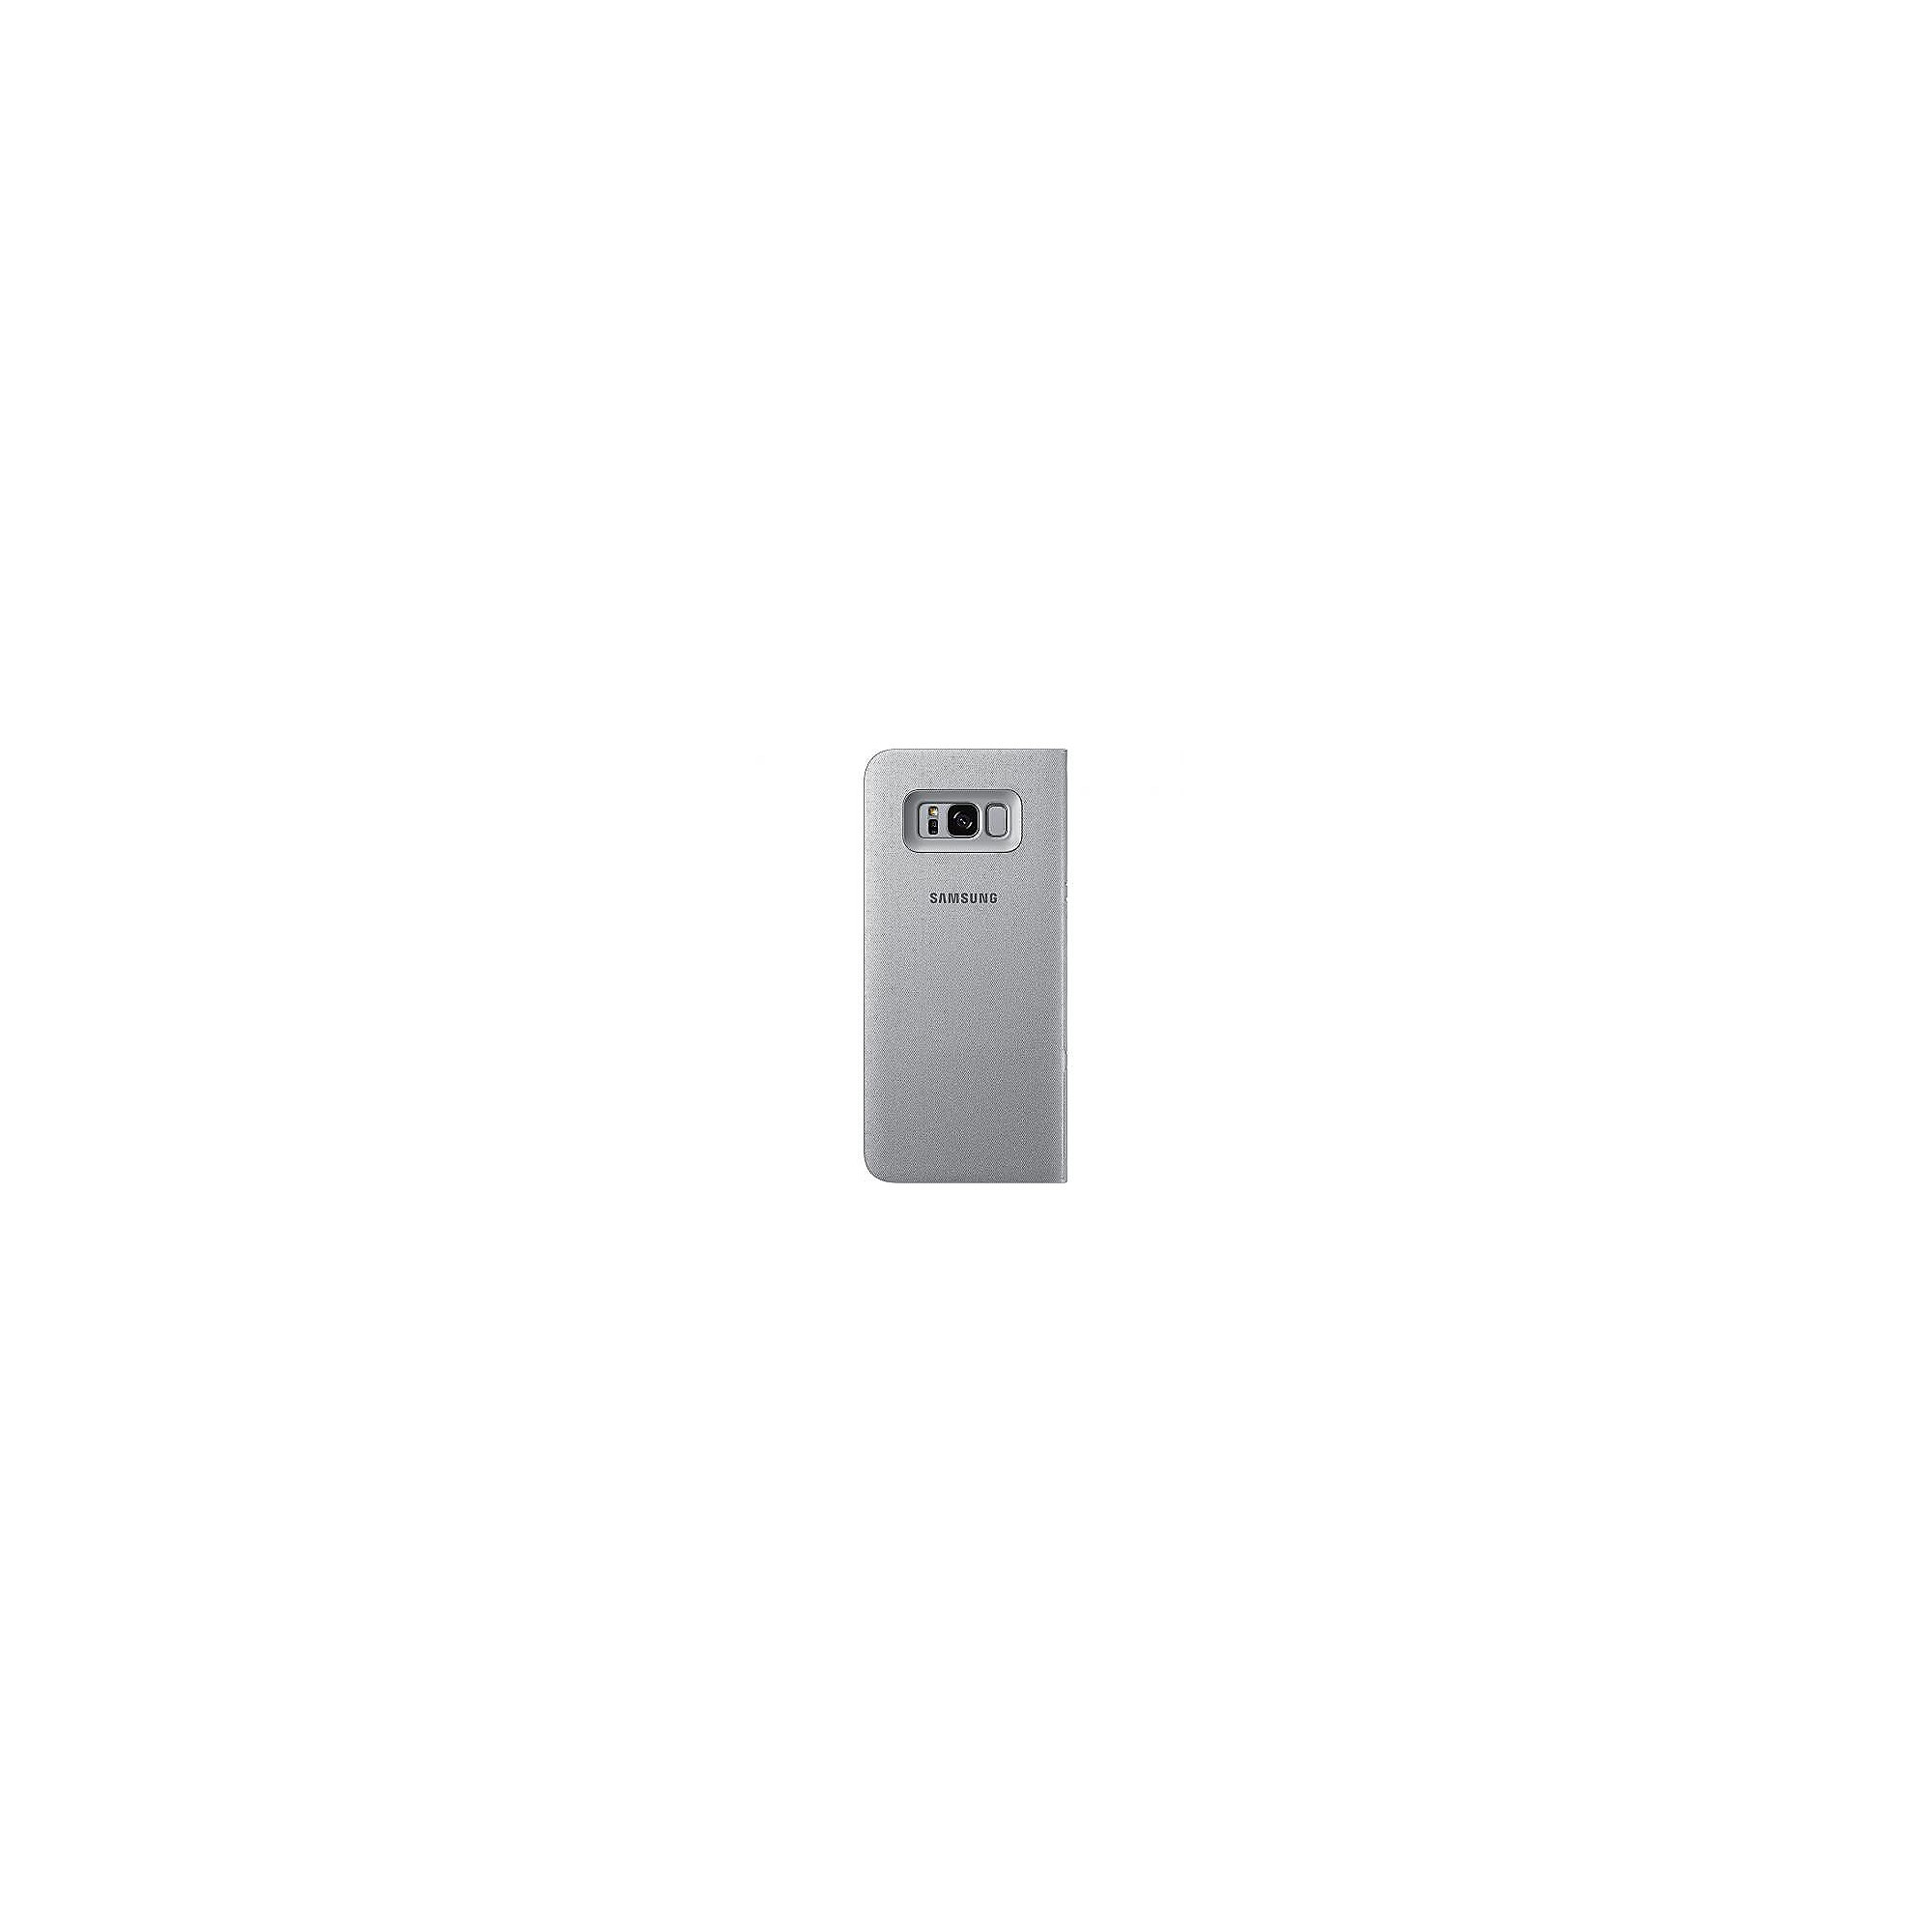 Samsung EF-NG955 LED View Cover für Galaxy S8+ silber